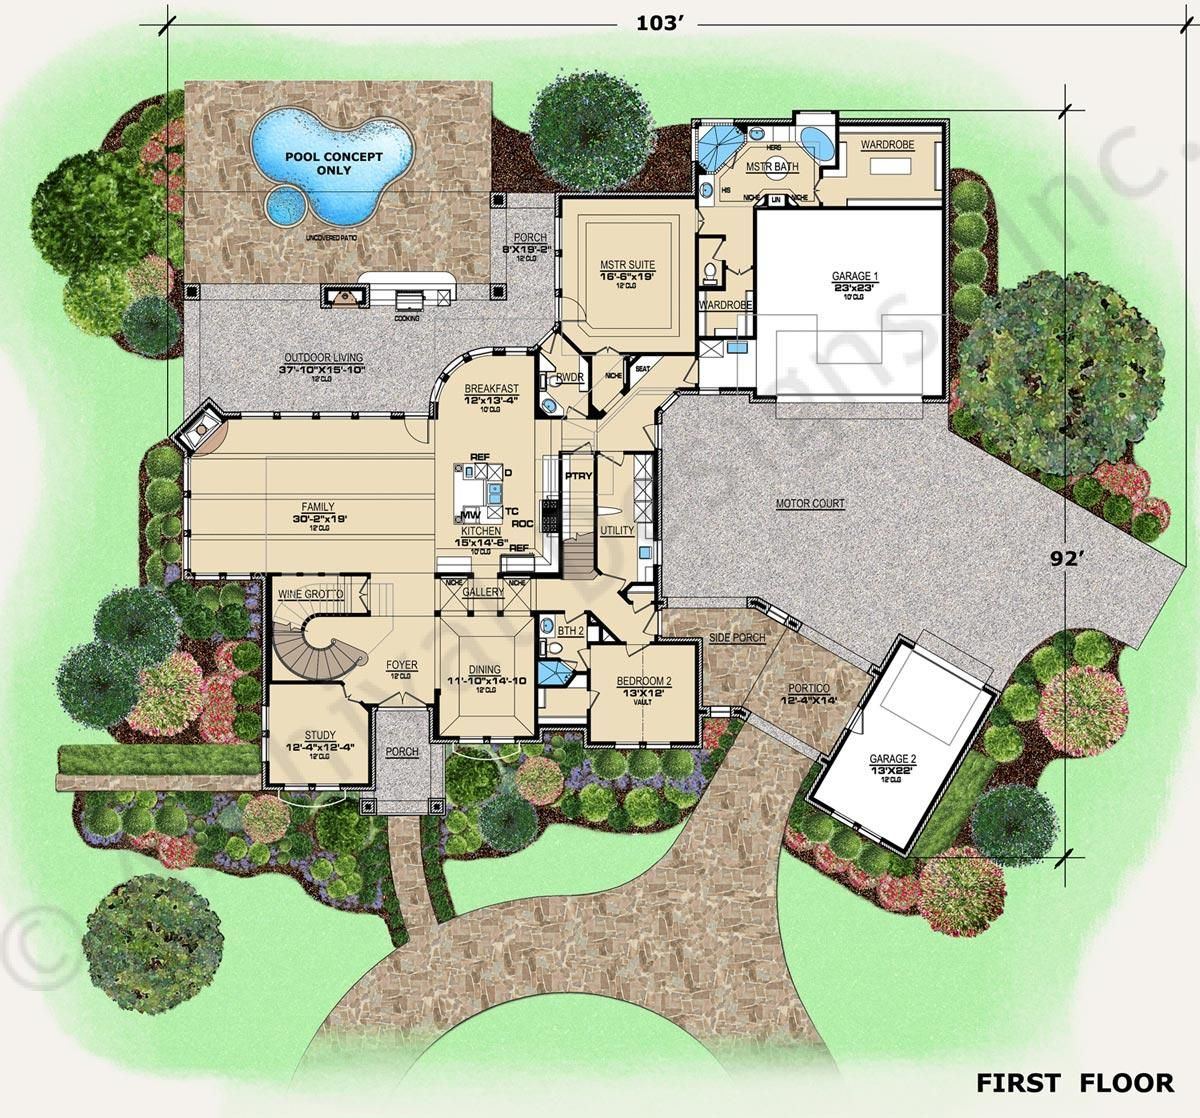 Augusta Residential House Plans Texas House Plans